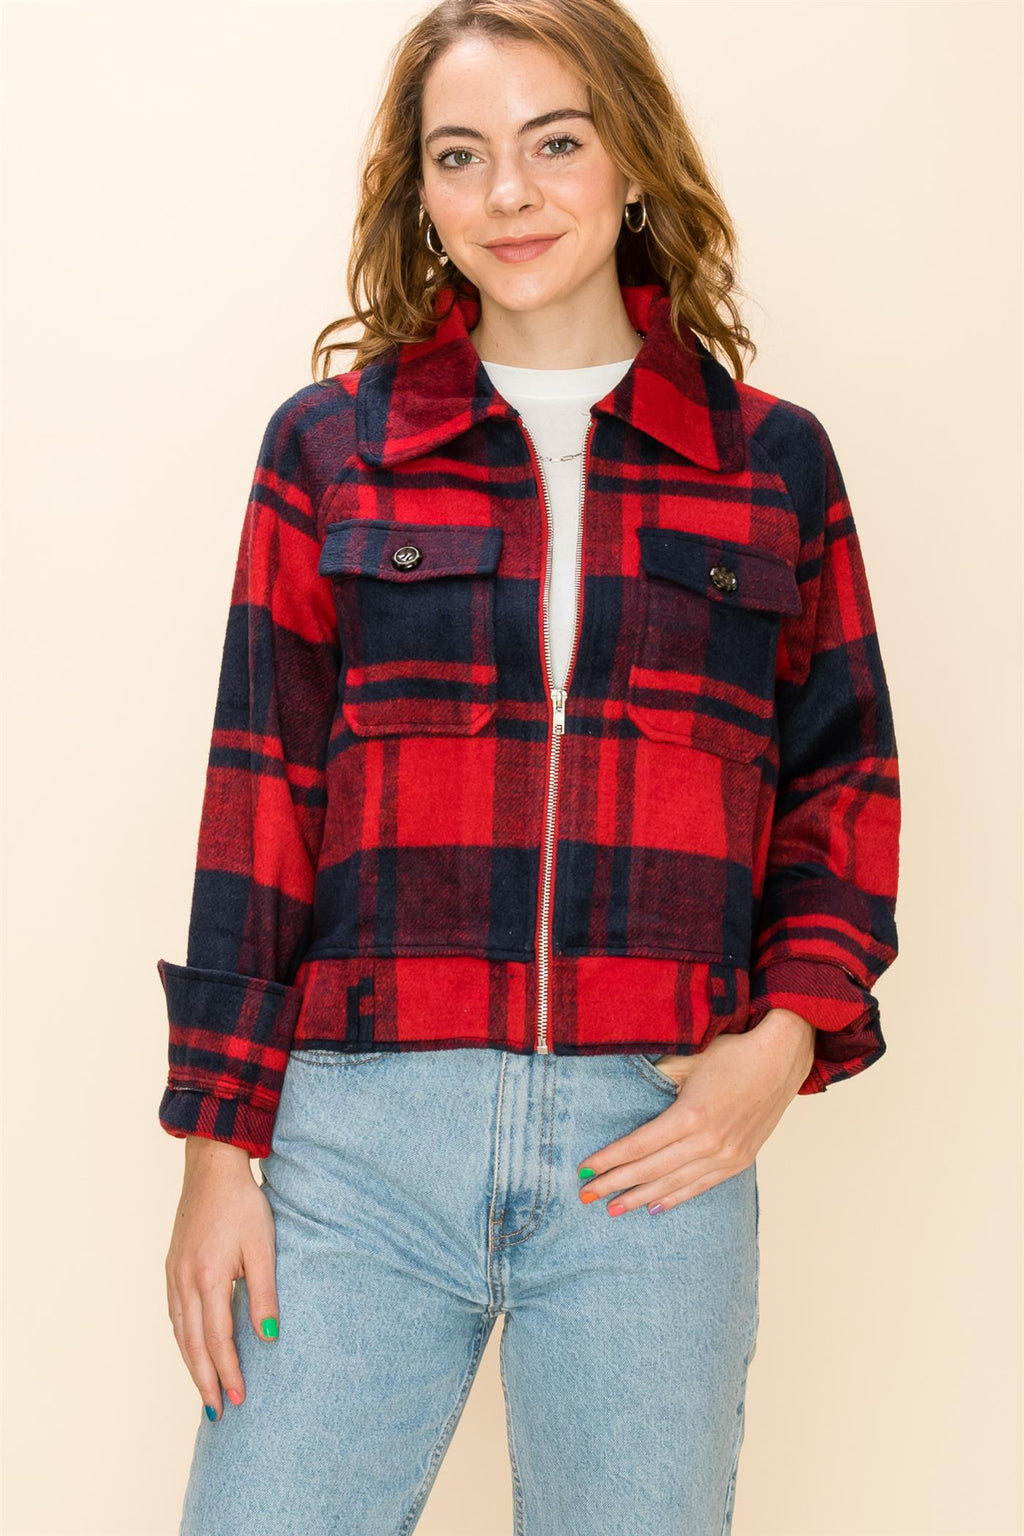 Red/Blue Plaid Jacket